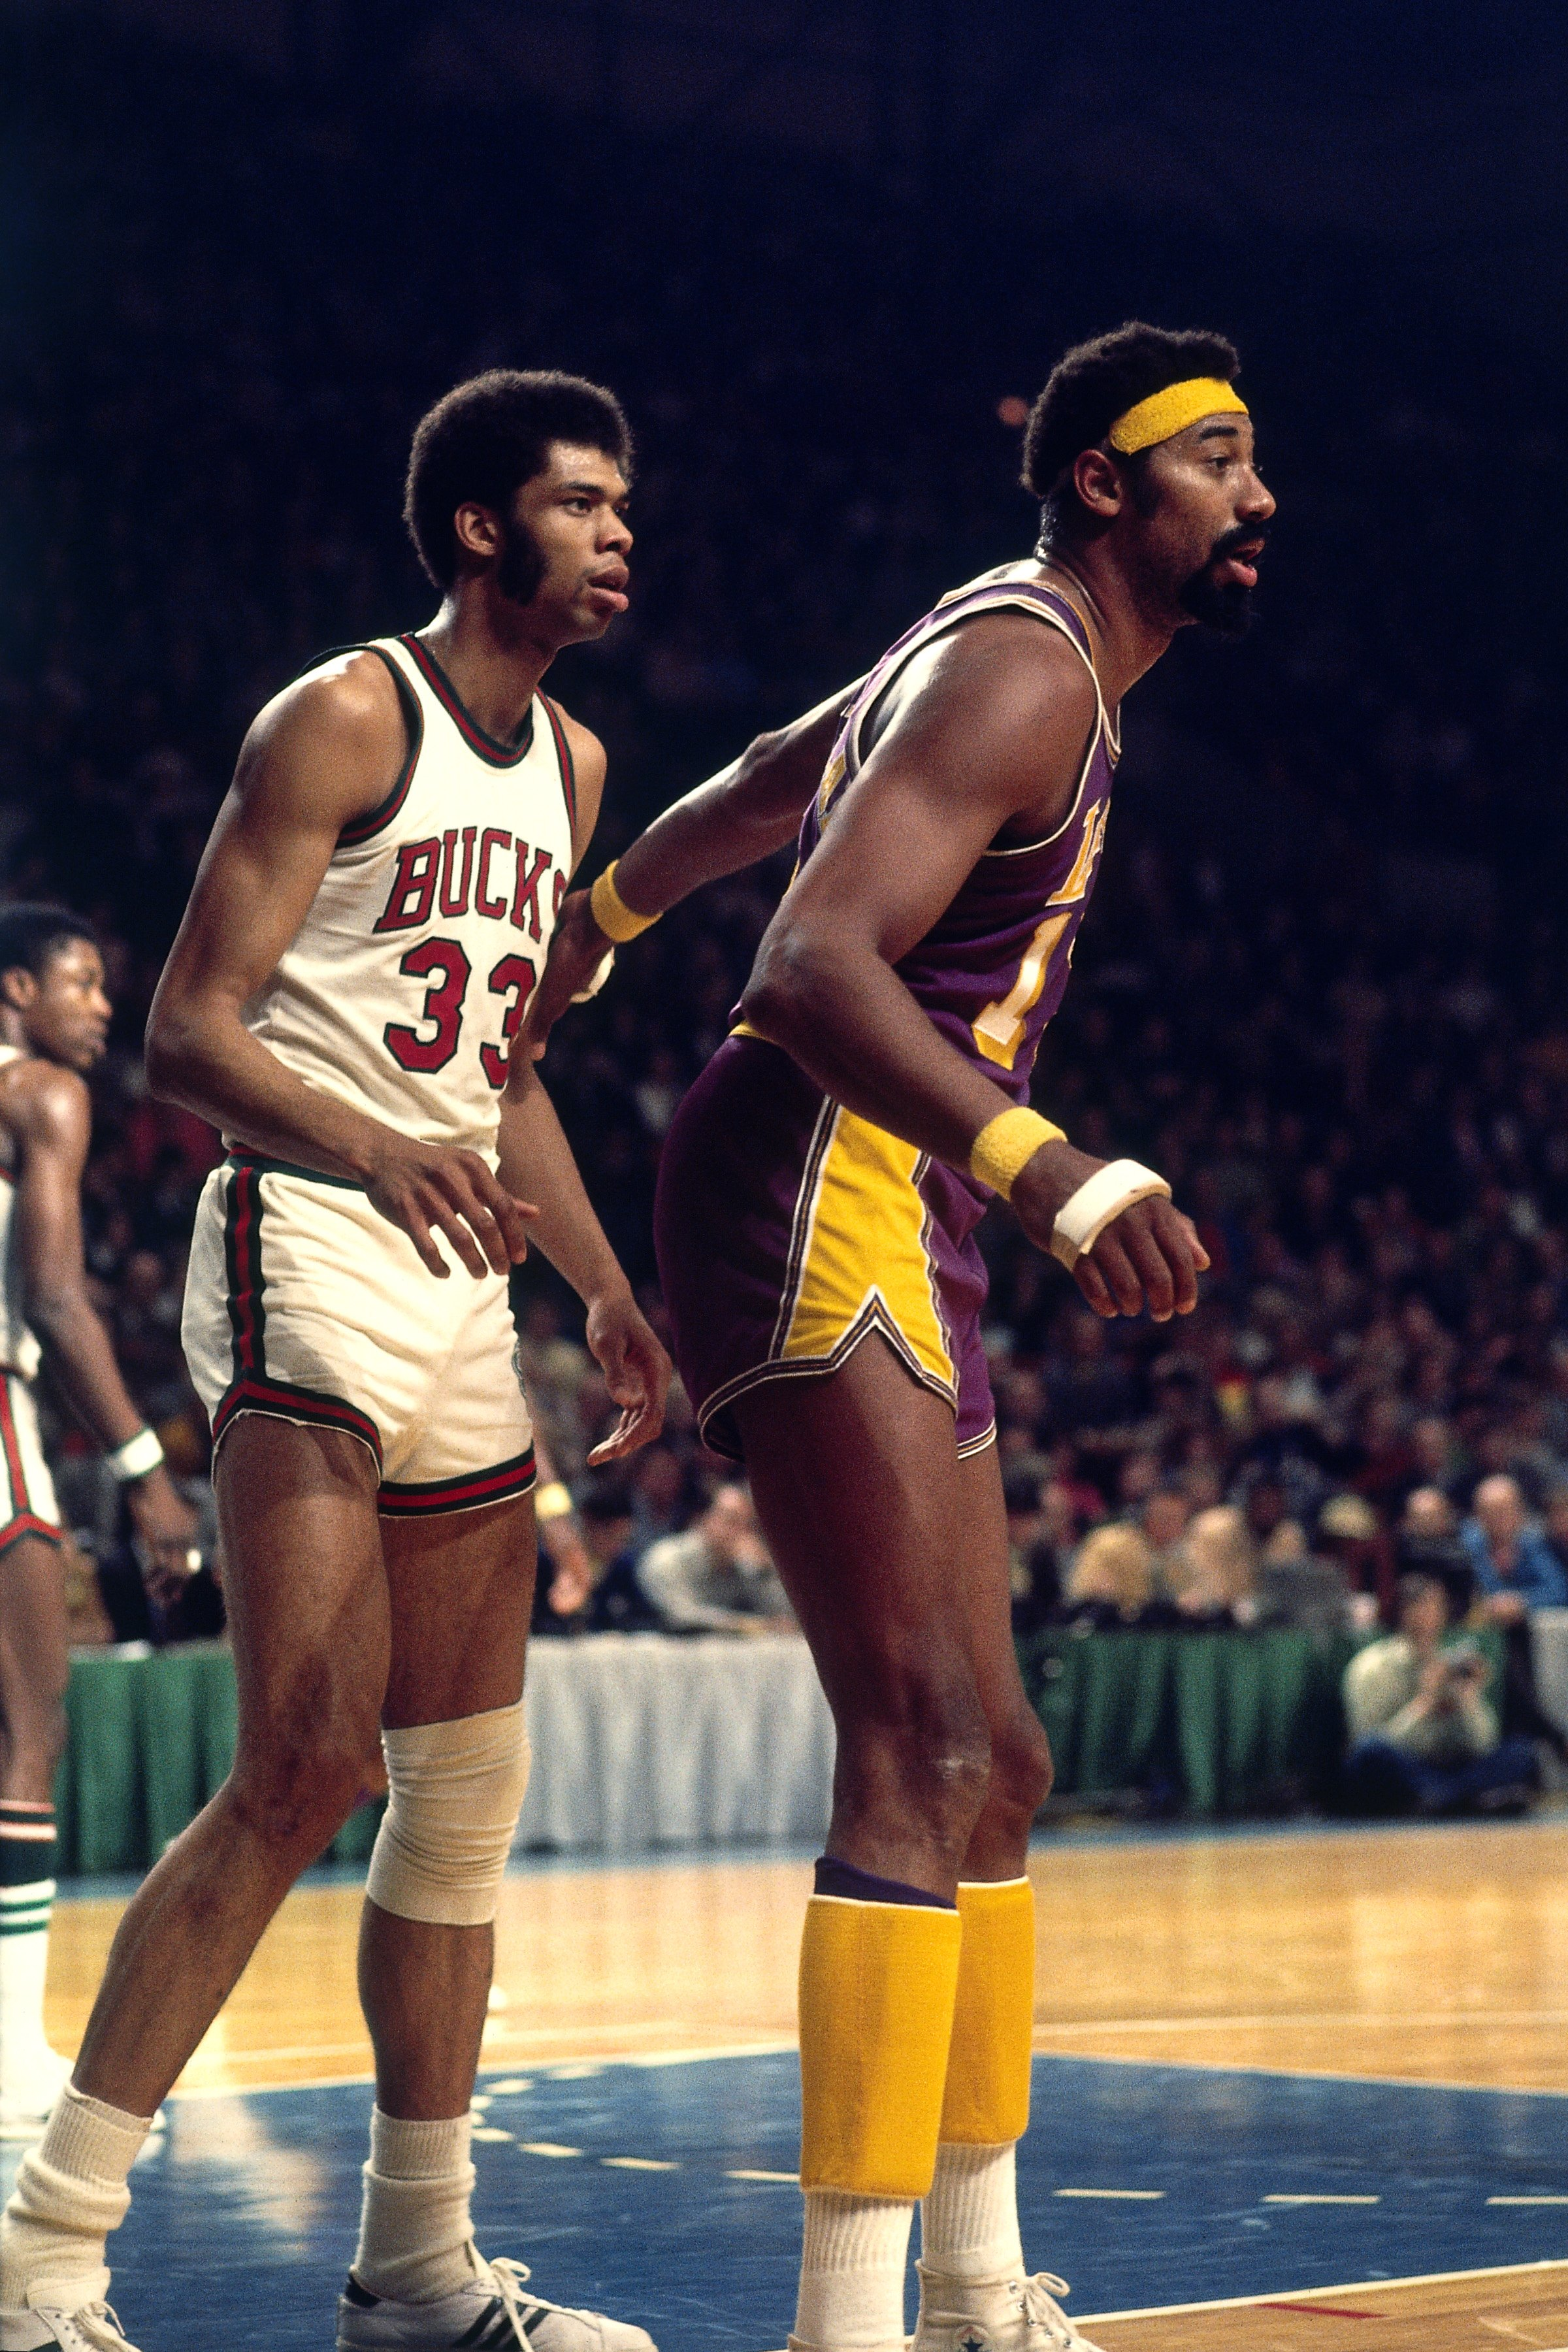 Wilt Chamberlain posts up against Kareem Abdul-Jabbar (33) in 1972. (Getty)